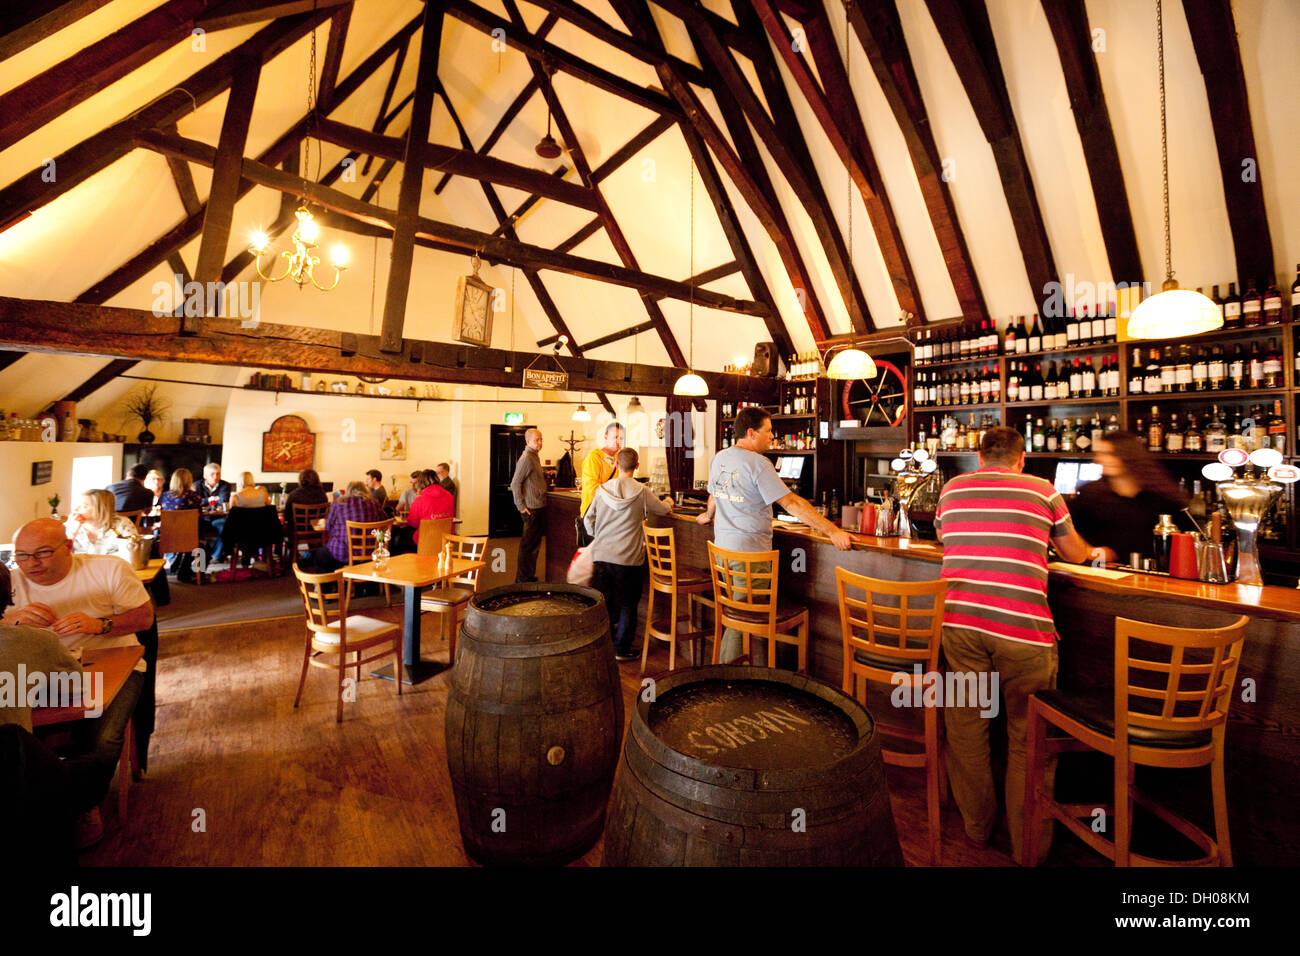 People ordering drinks and drinking, Bedfords Wine Bar and restaurant, Norwich, Norfolk UK - Stock Image